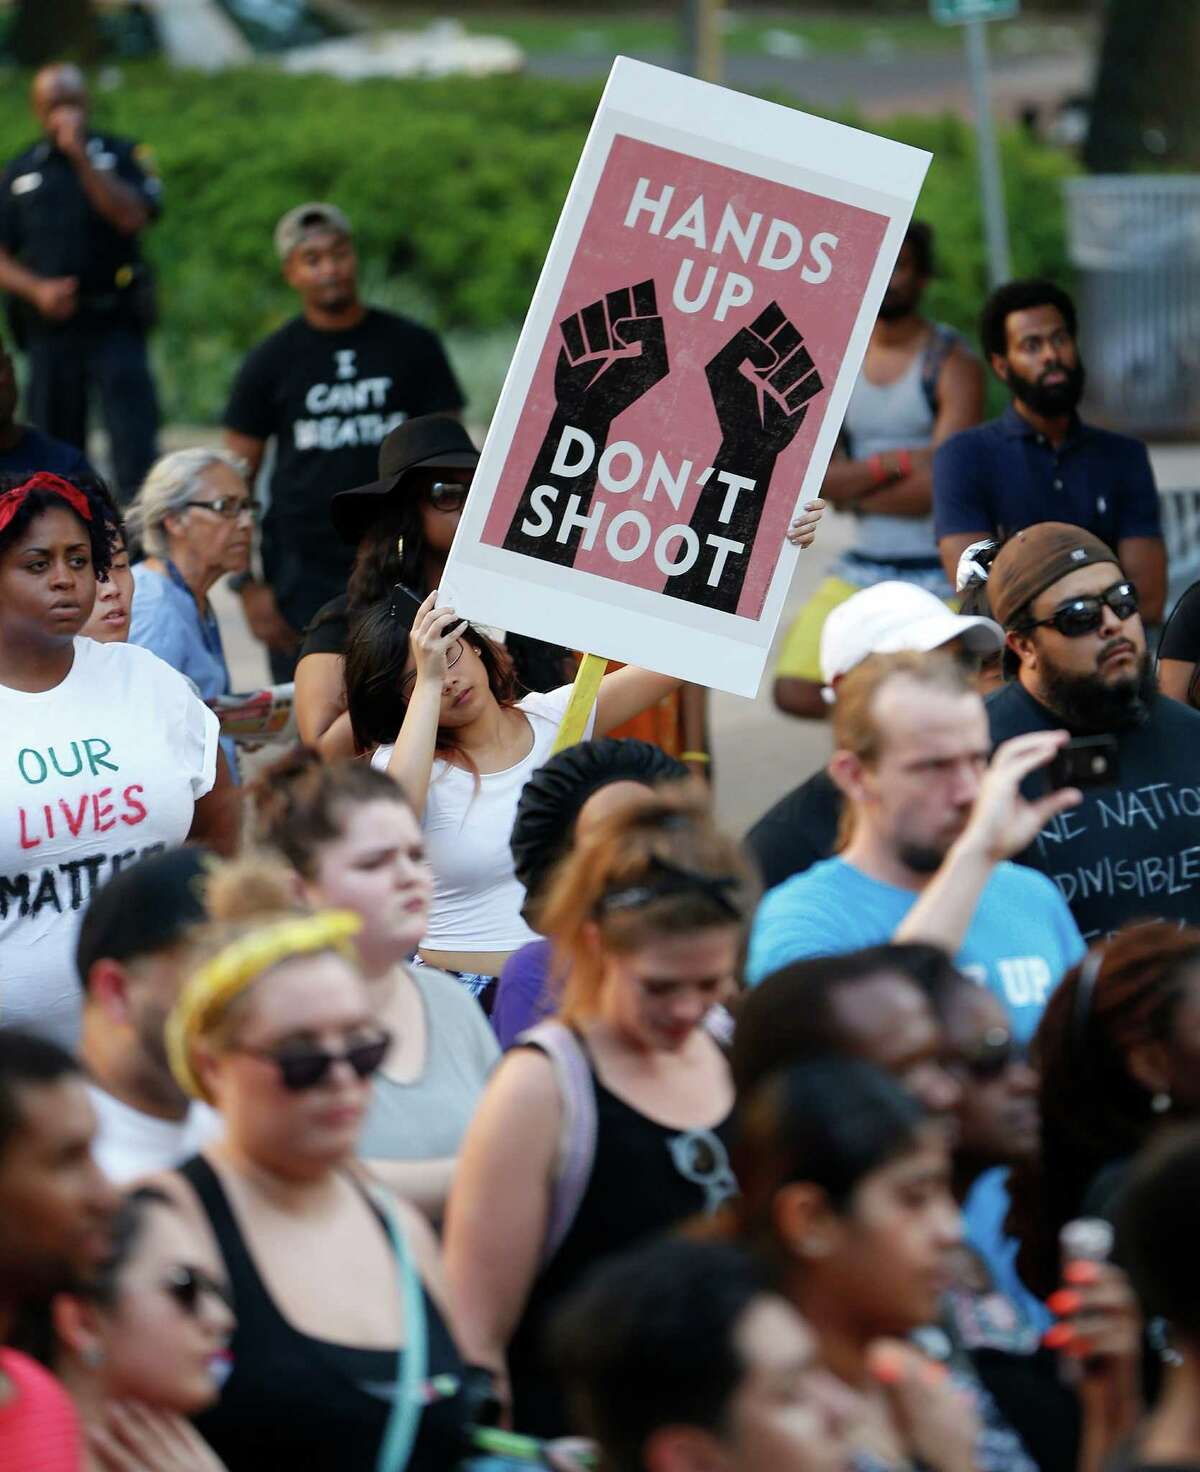 A protester holds a sign during a Black Lives Matter rally that began at Discovery Green and ended at City Hall, Friday, July 8, 2016, in Houston.